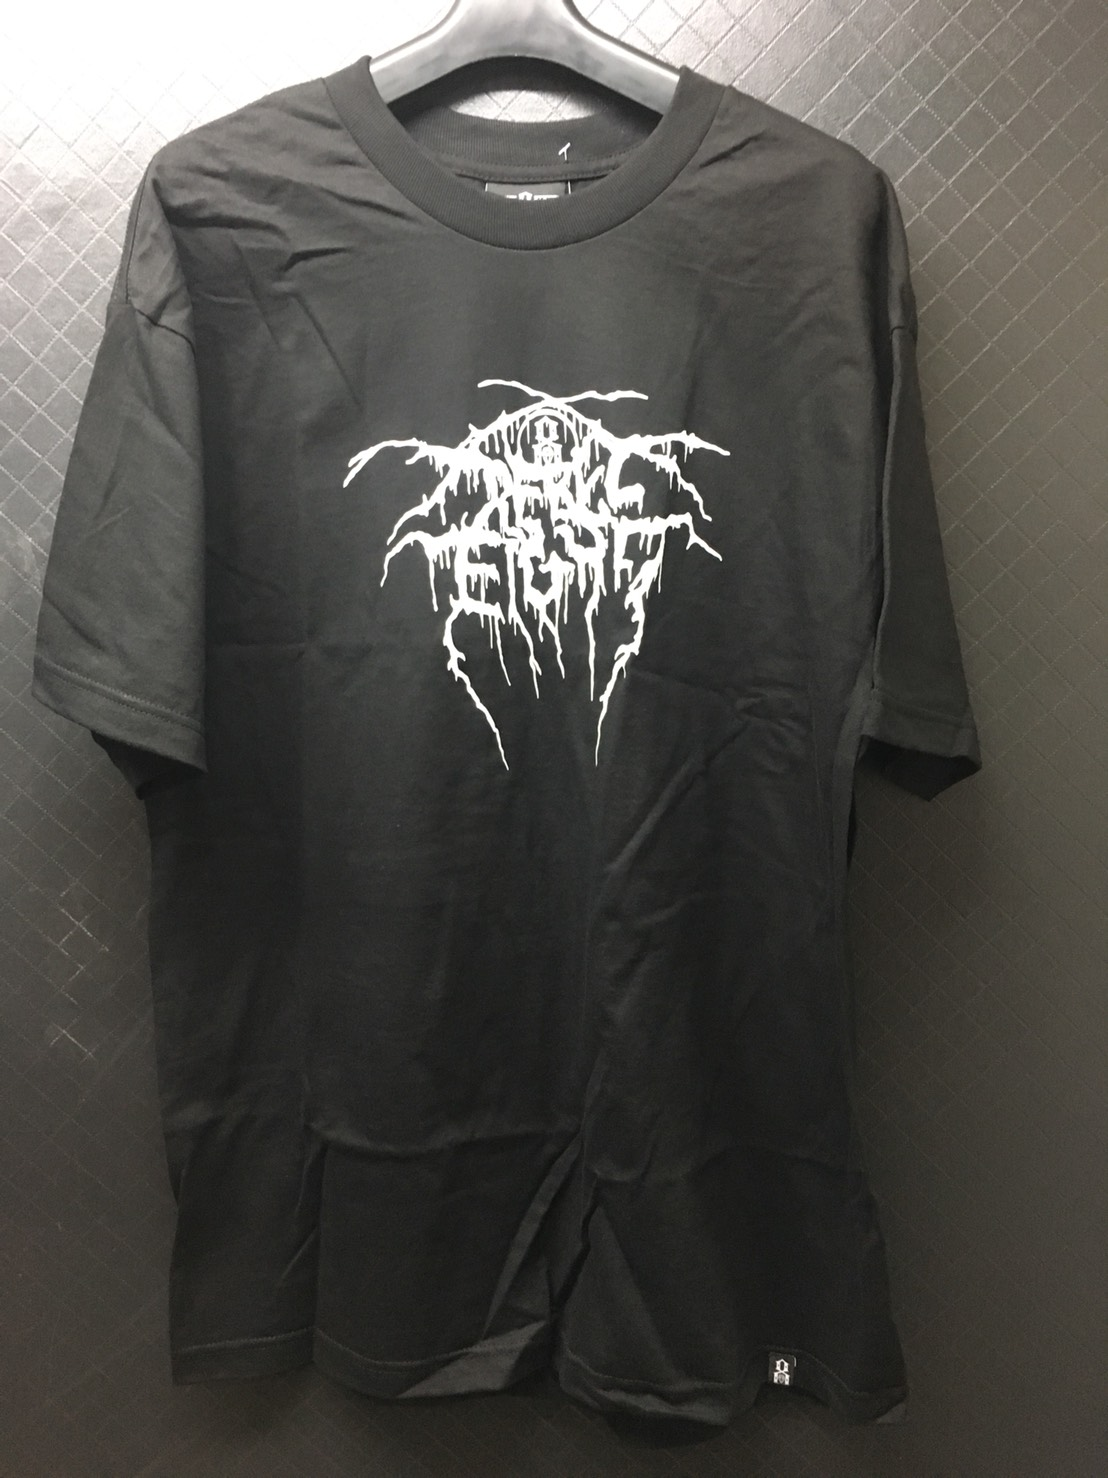 rebel8 Pagan Tee